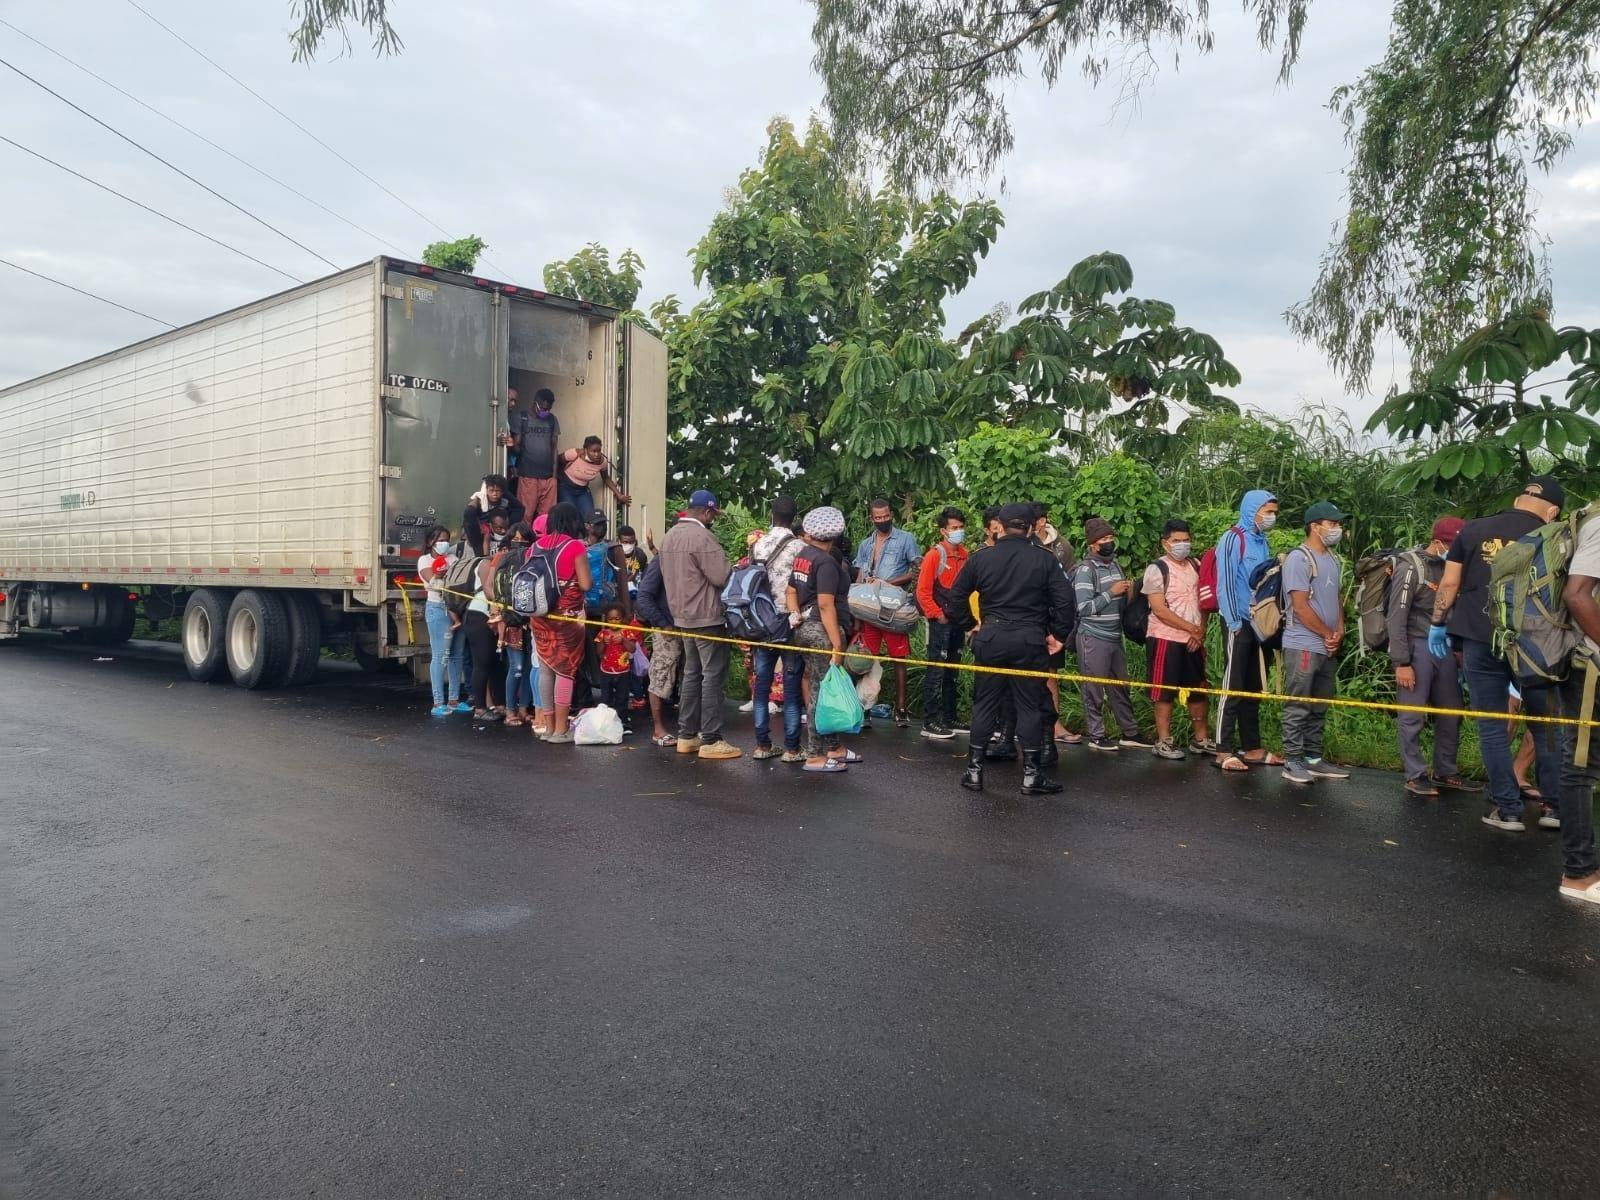 126 mainly Haitian migrants attempting to get to the US were abandoned in a  locked shipping container